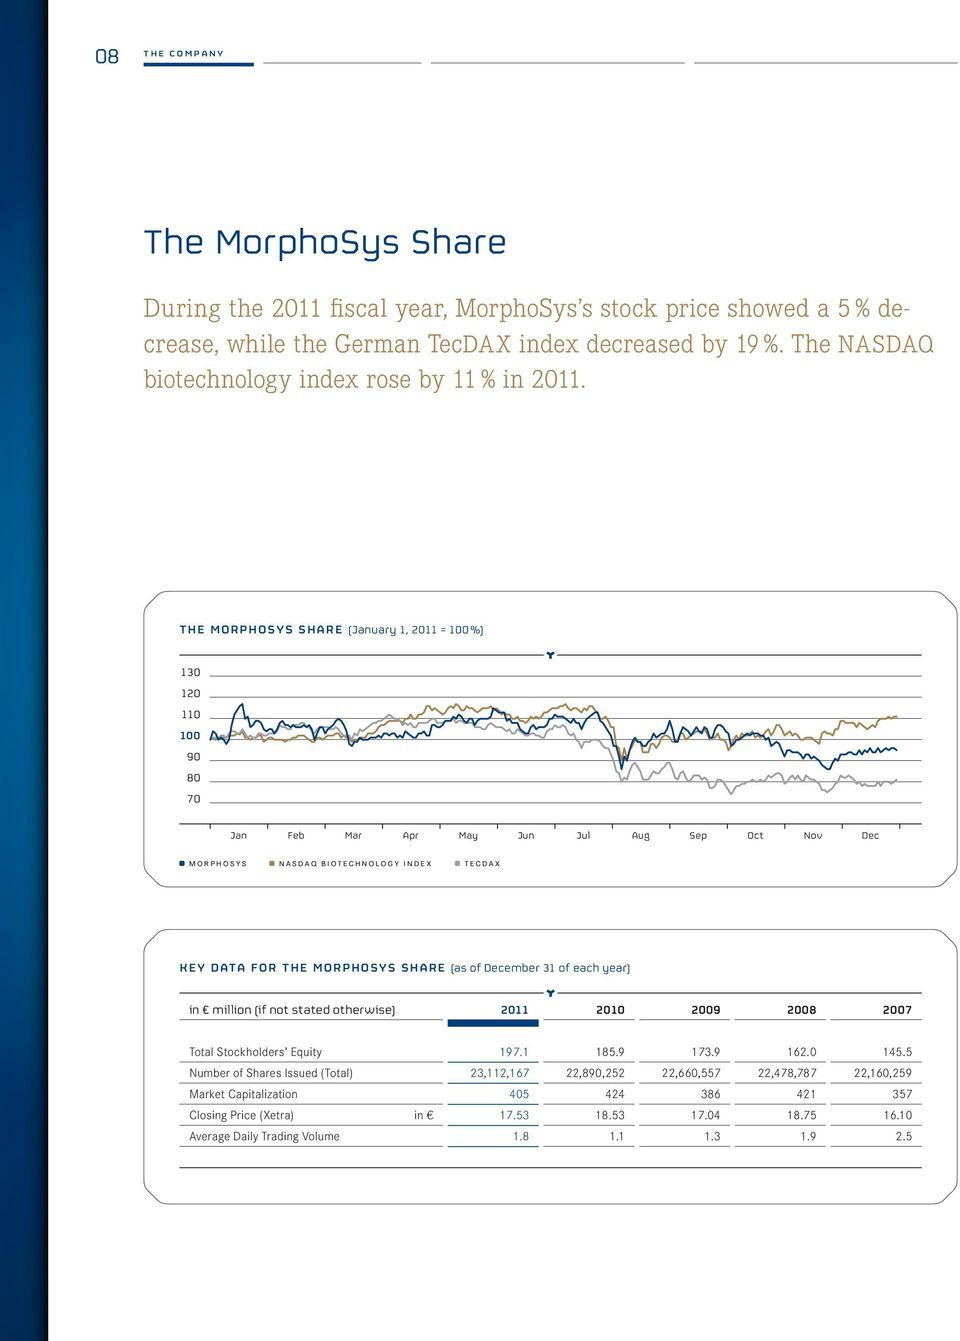 The Morphosys Share (January 1, 2011 = 100 %) 130 120 110 100 90 80 70 Jan Feb Mar Apr May Jun Jul Aug Sep Oct Nov Dec morphosys nasdaq biotechnology index tecdax Key data for the MorphoSys share (as